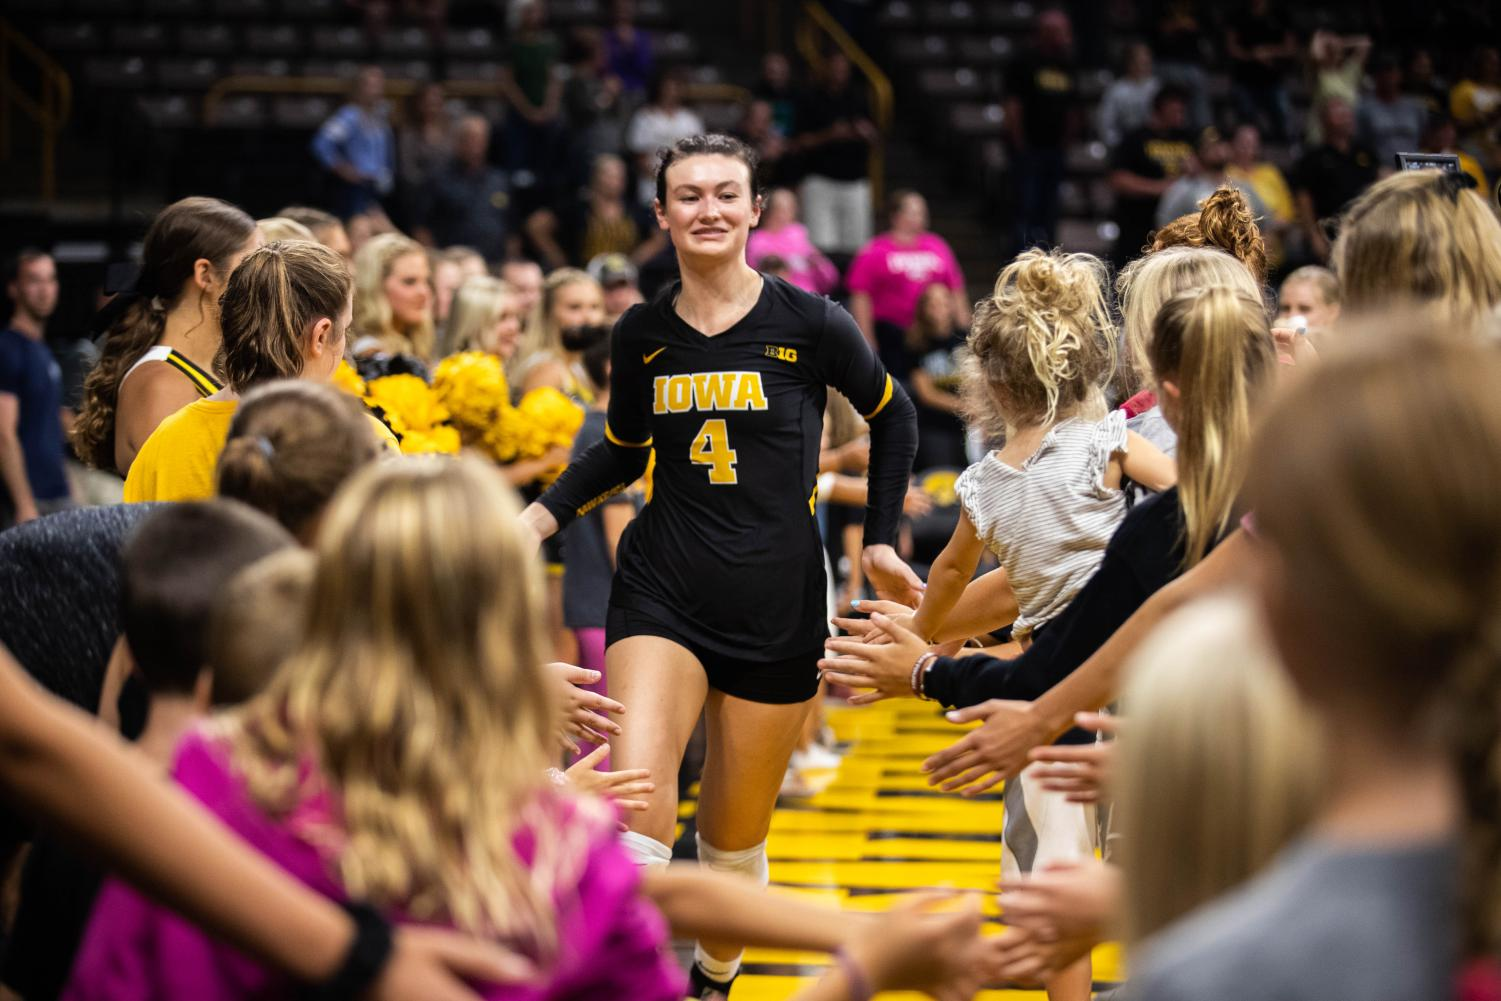 Iowa+defensive+specialist+Halle+Johnston+high+fives+kids+before+a+volleyball+match+between+Iowa+and+Washington+at+Carver+Hawkeye+Arena+on+Saturday%2C+September+7%2C+2019.+The+Hawkeyes+were+defeated+by+the+Huskies%2C+3-1.